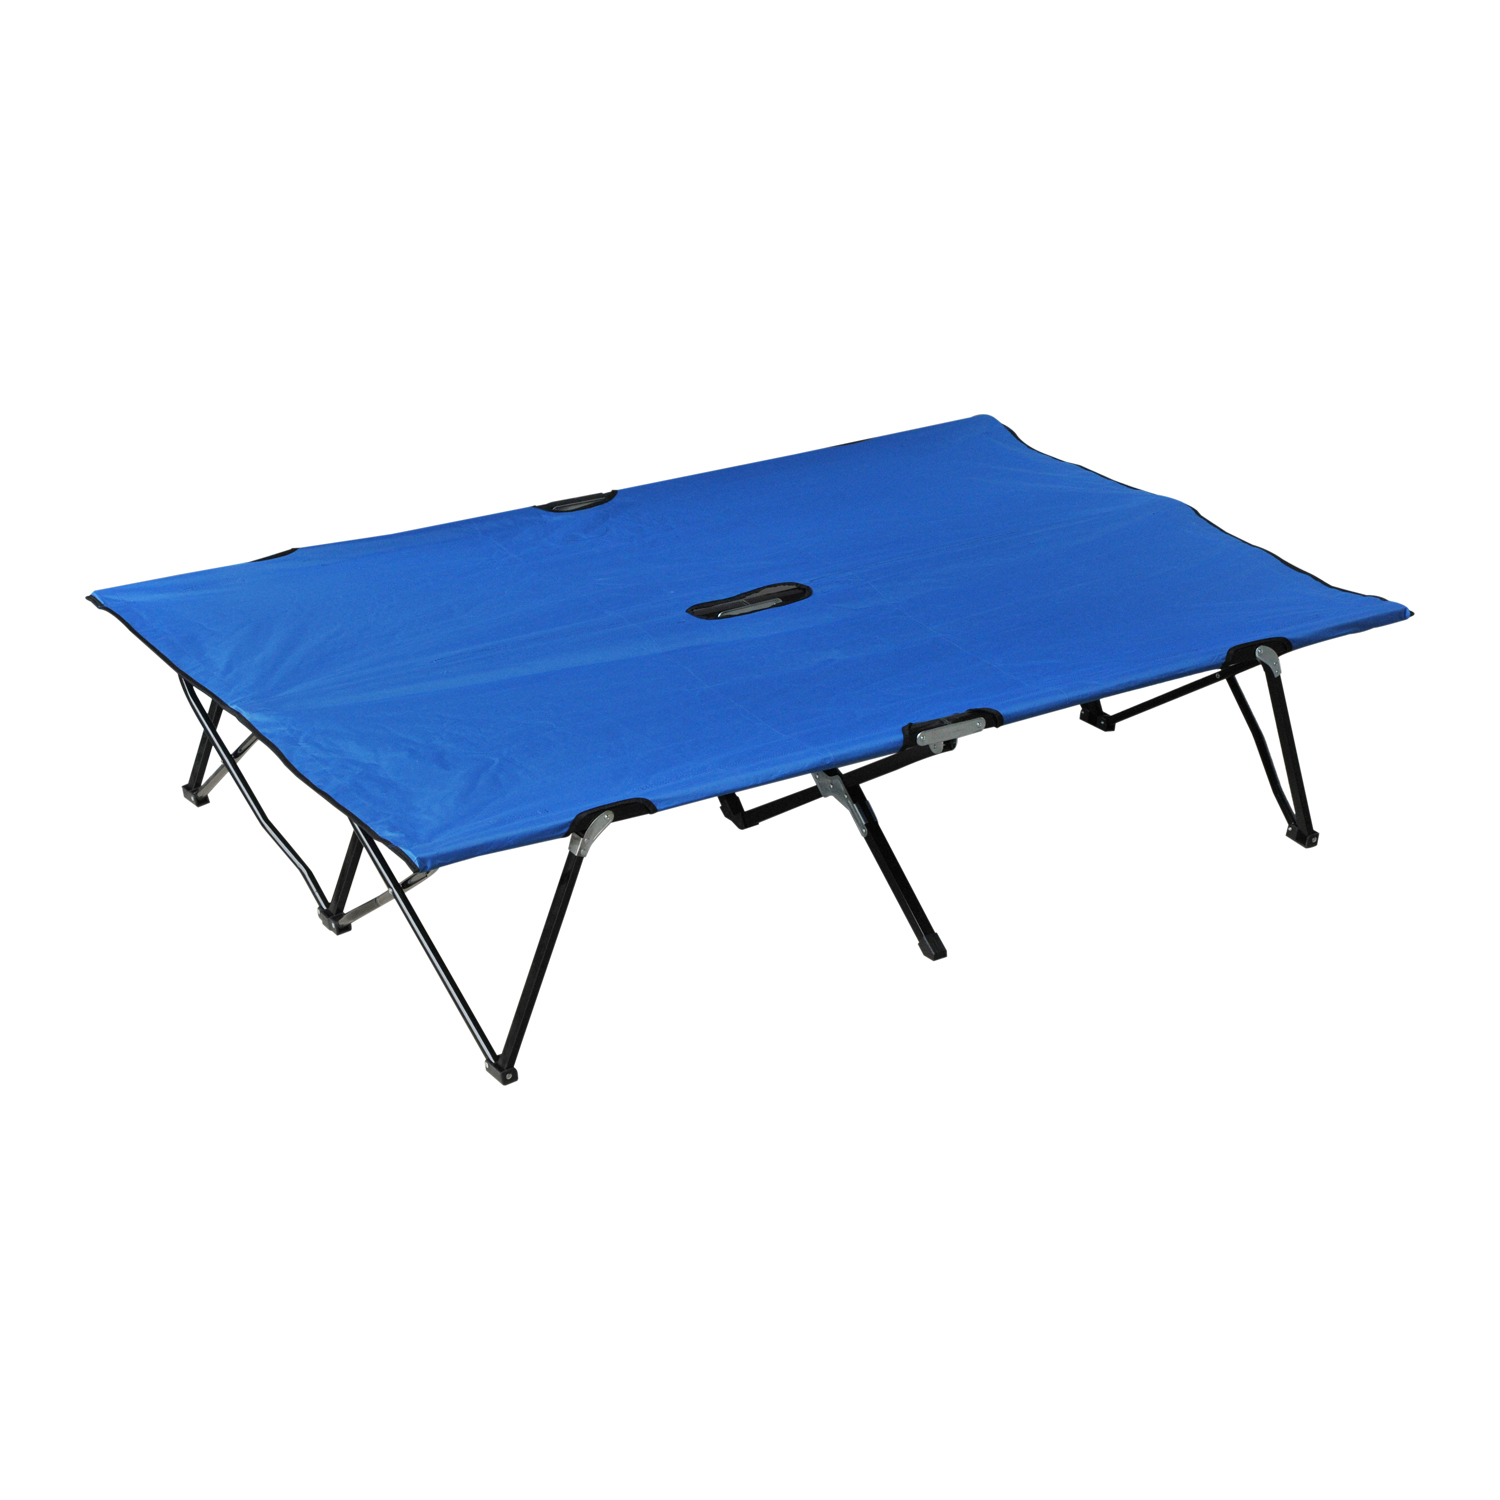 Outsunny 76 Two Person Double Wide Folding Camping Cot Blue by Aosom LLC